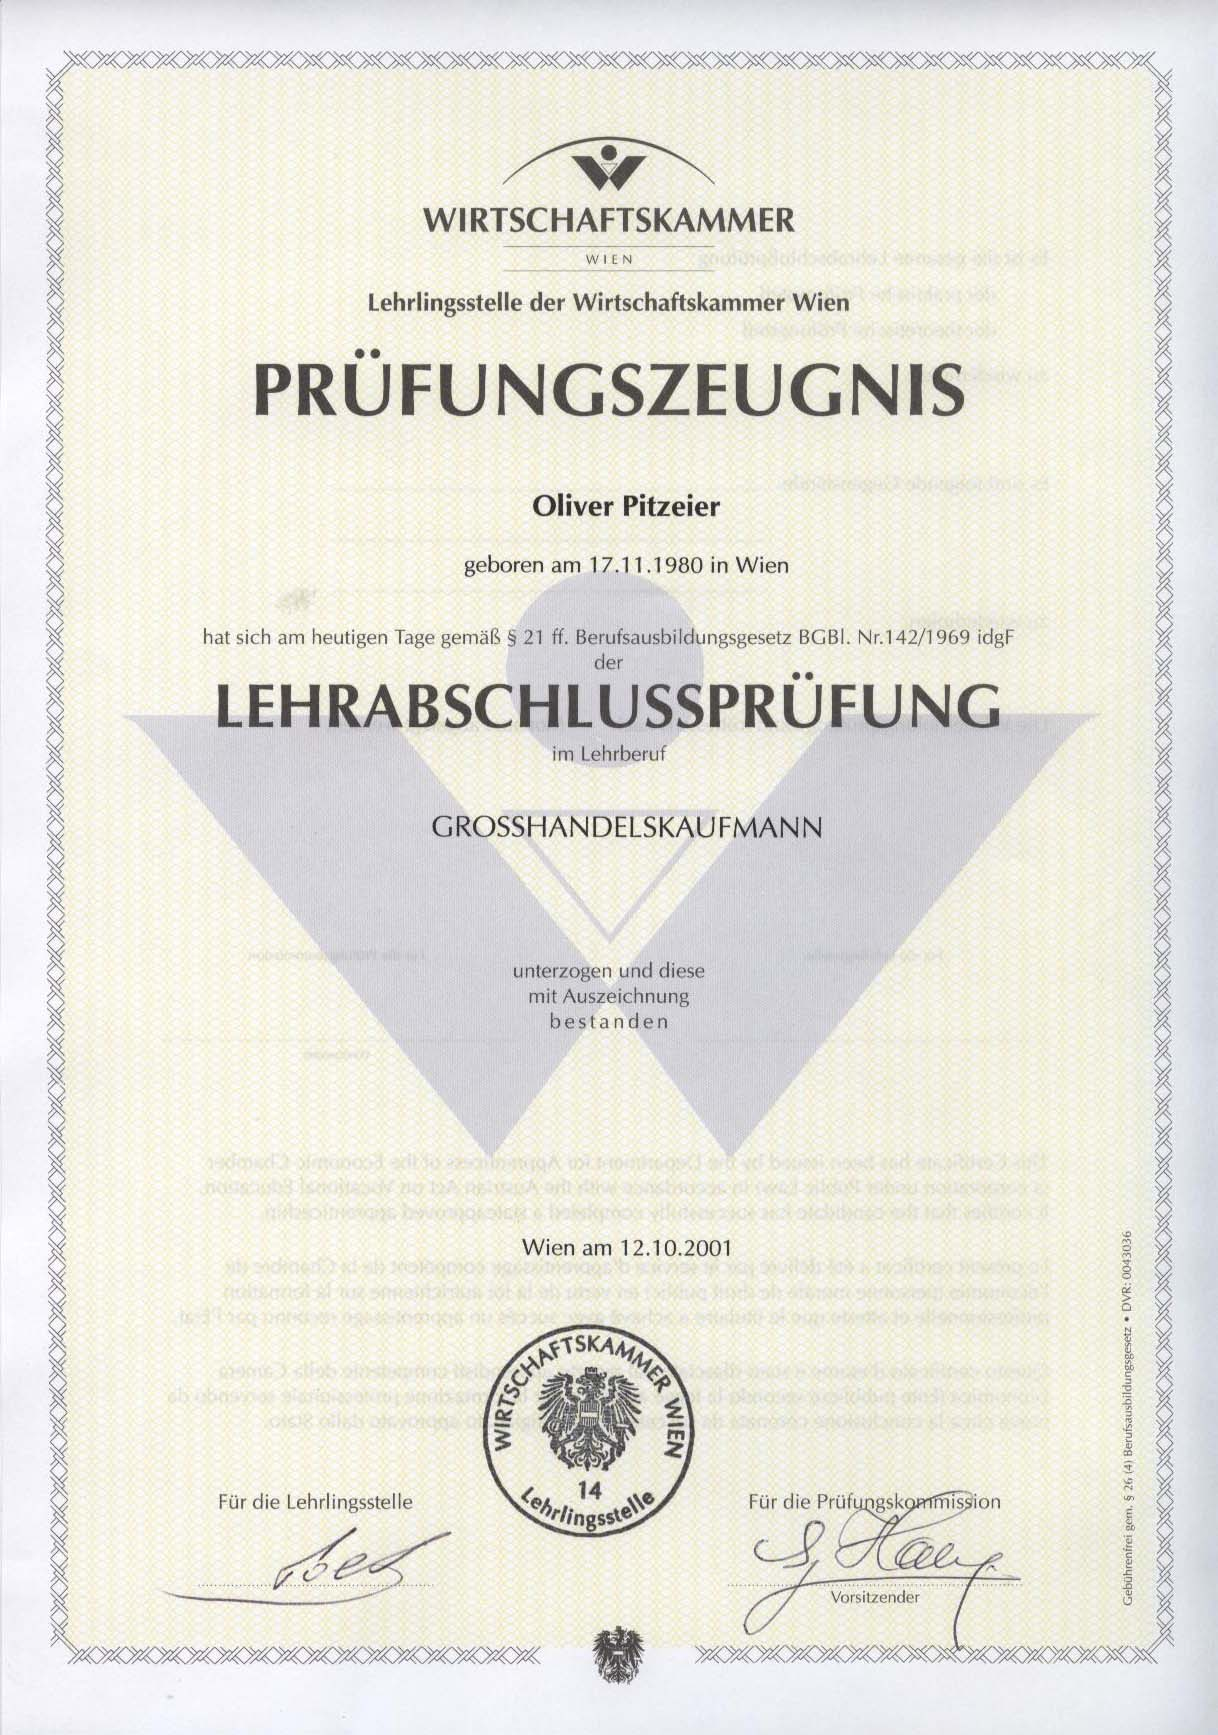 Personal information oliver falk 2008 itil foundation certificate 2008 scrummaster certificate 2013 red hat certified systems administrator rhcsa verify certification status xflitez Gallery